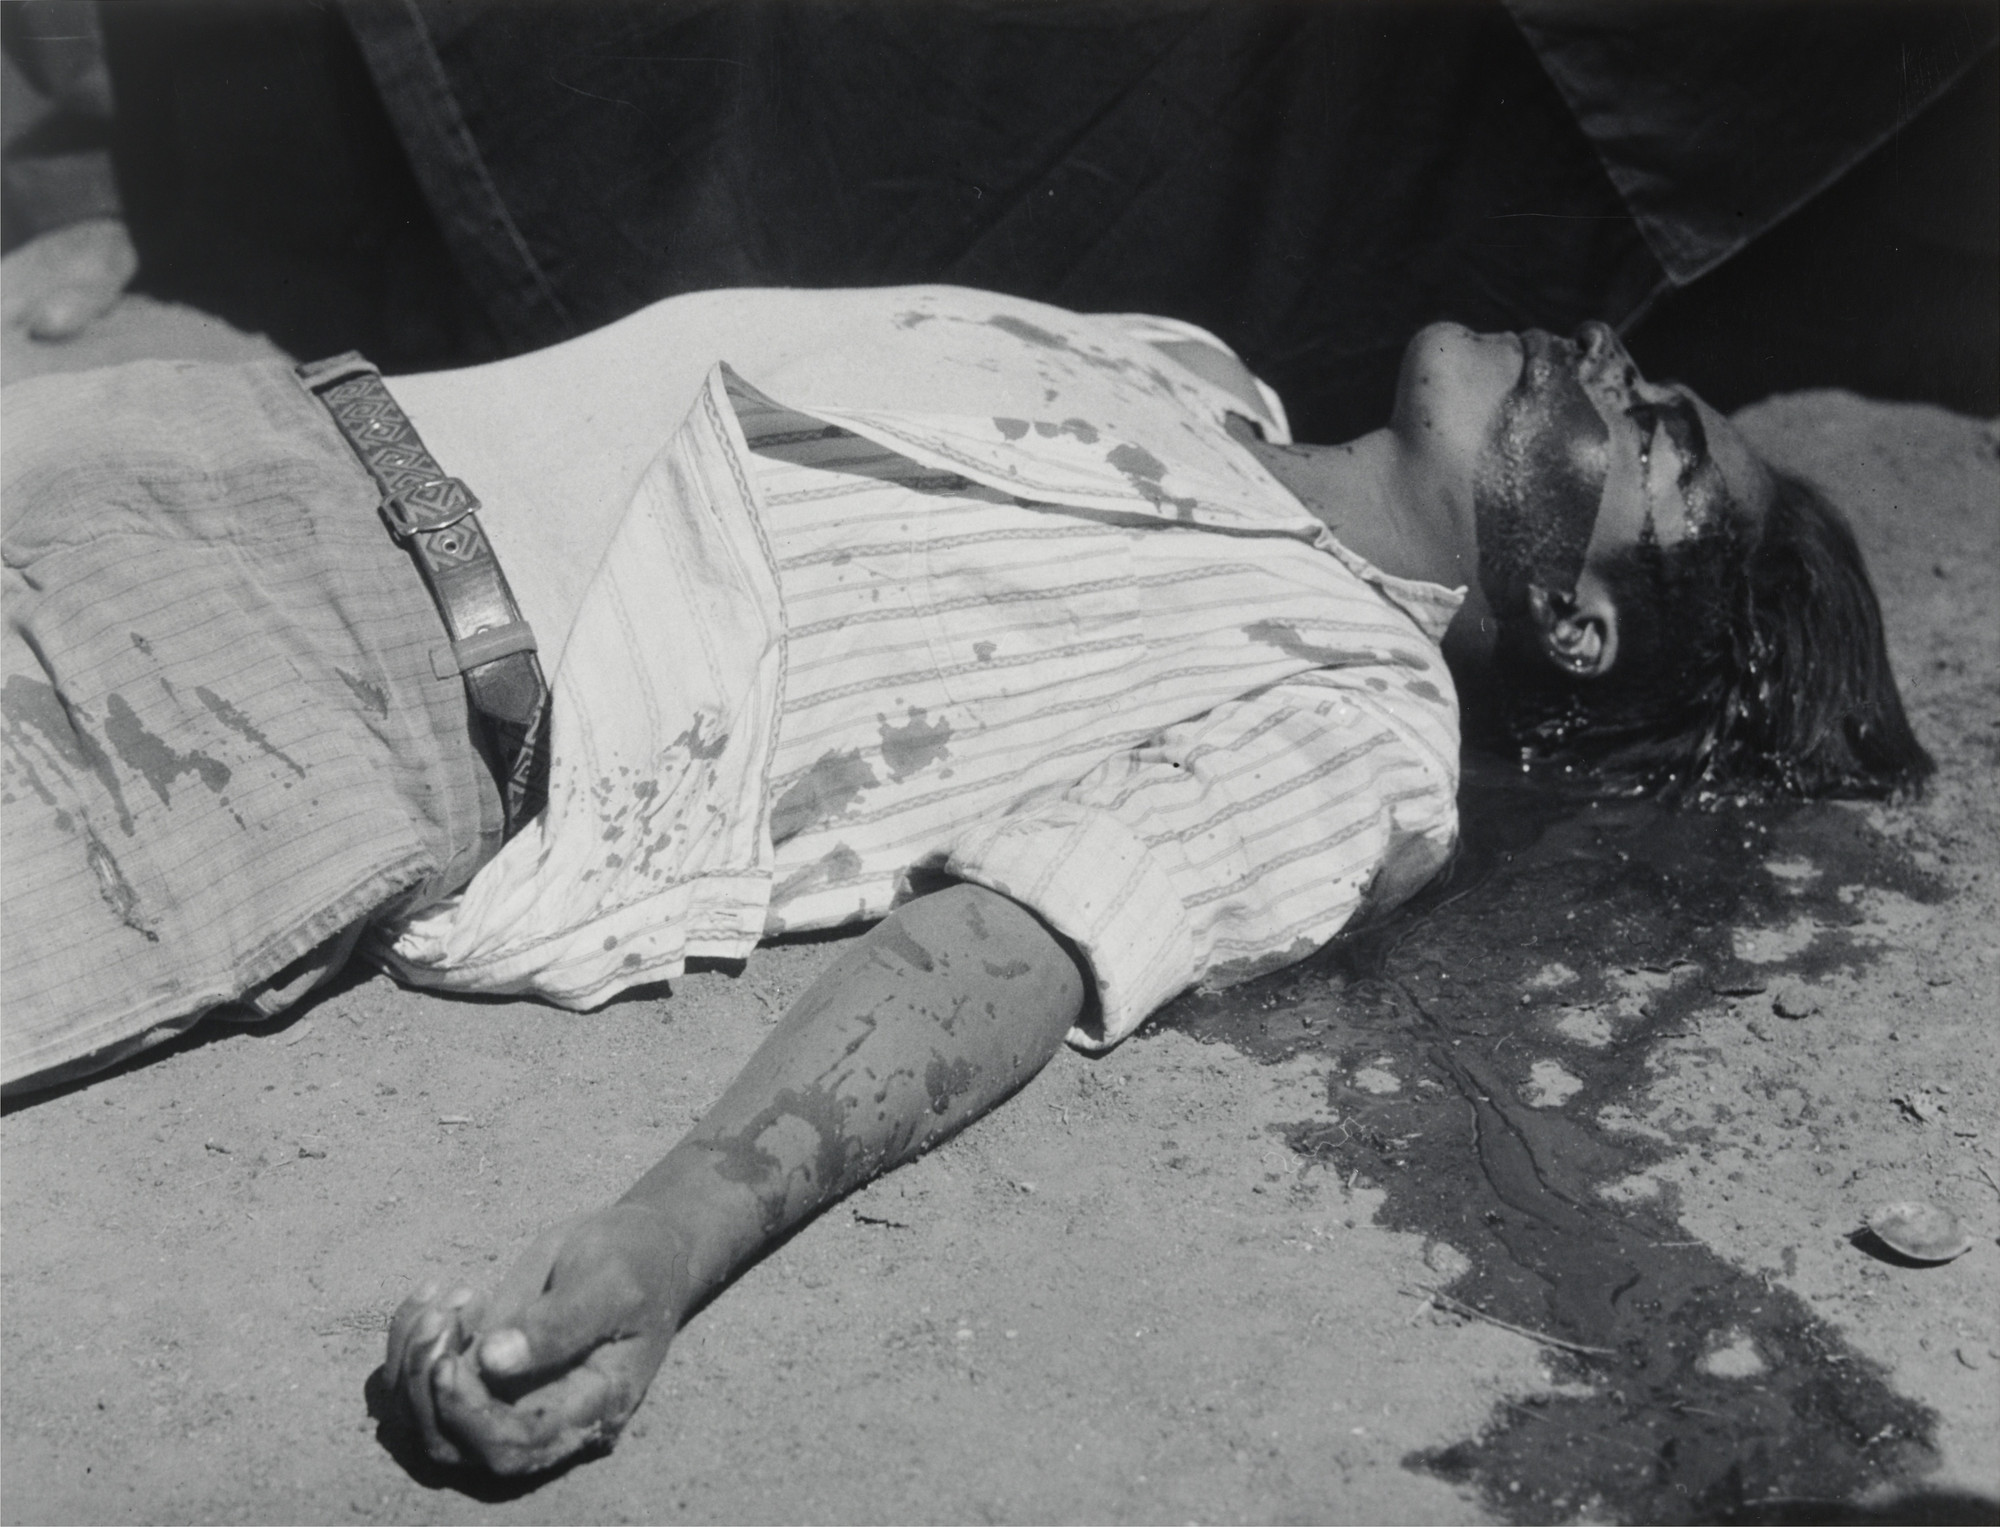 Manuel Álvarez Bravo. Striking Worker, Assassinated. 1934